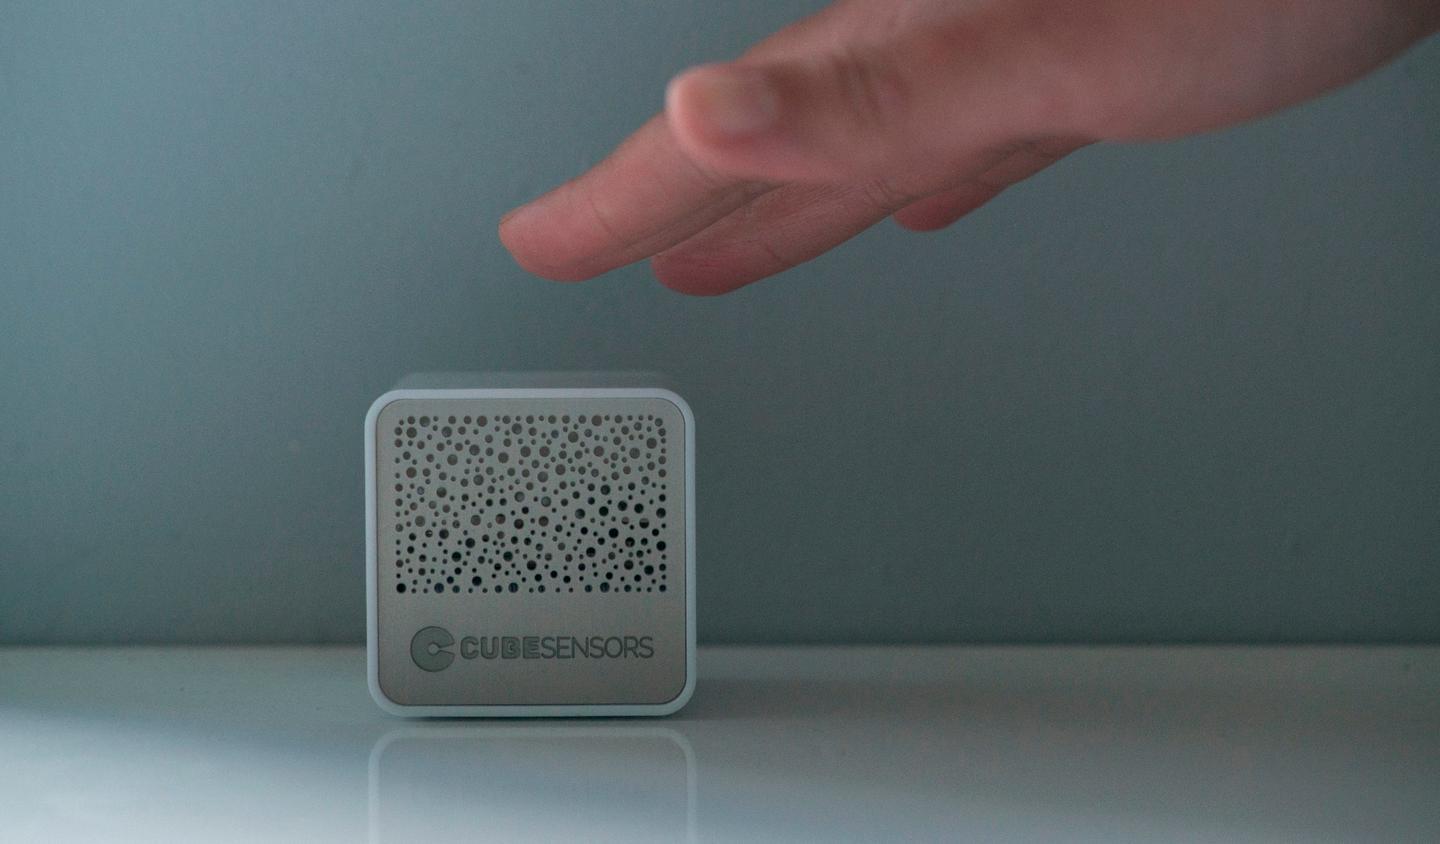 The CubeSensors can give instant feedback about your environment with a simple tap or shake